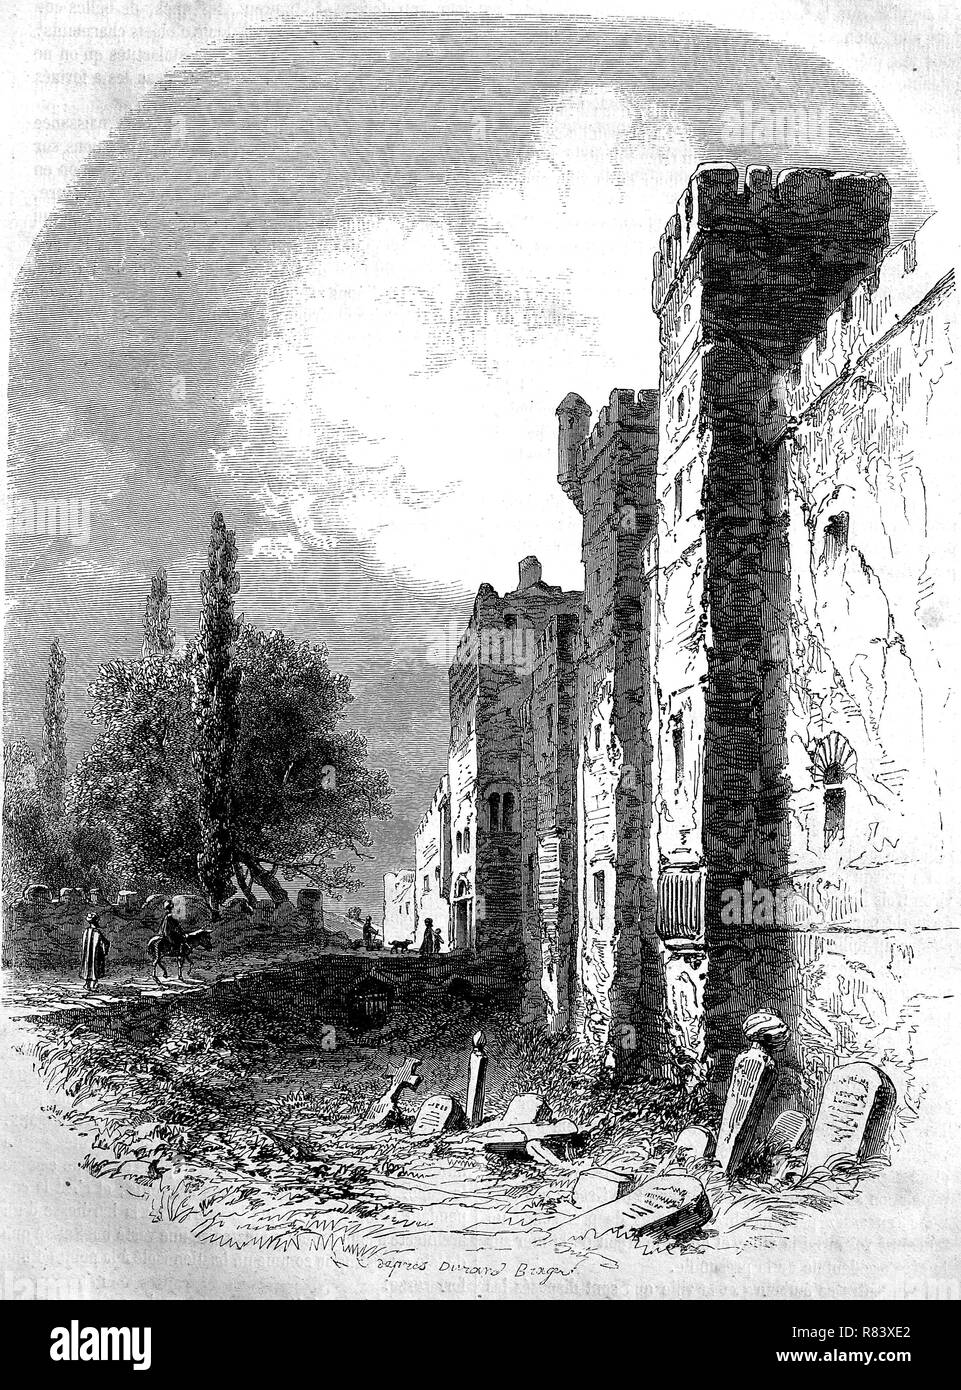 Digital improved reproduction, Sinop, Sinope, a city on the isthmus of Ince Burun, Inceburun, Cape Ince, near Cape Sinope, situated on the most northern edge of the Turkish side of the Black Sea coast, Turkey, Historisches Sinop in der Türkei, from an original print from the year 1855 Stock Photo